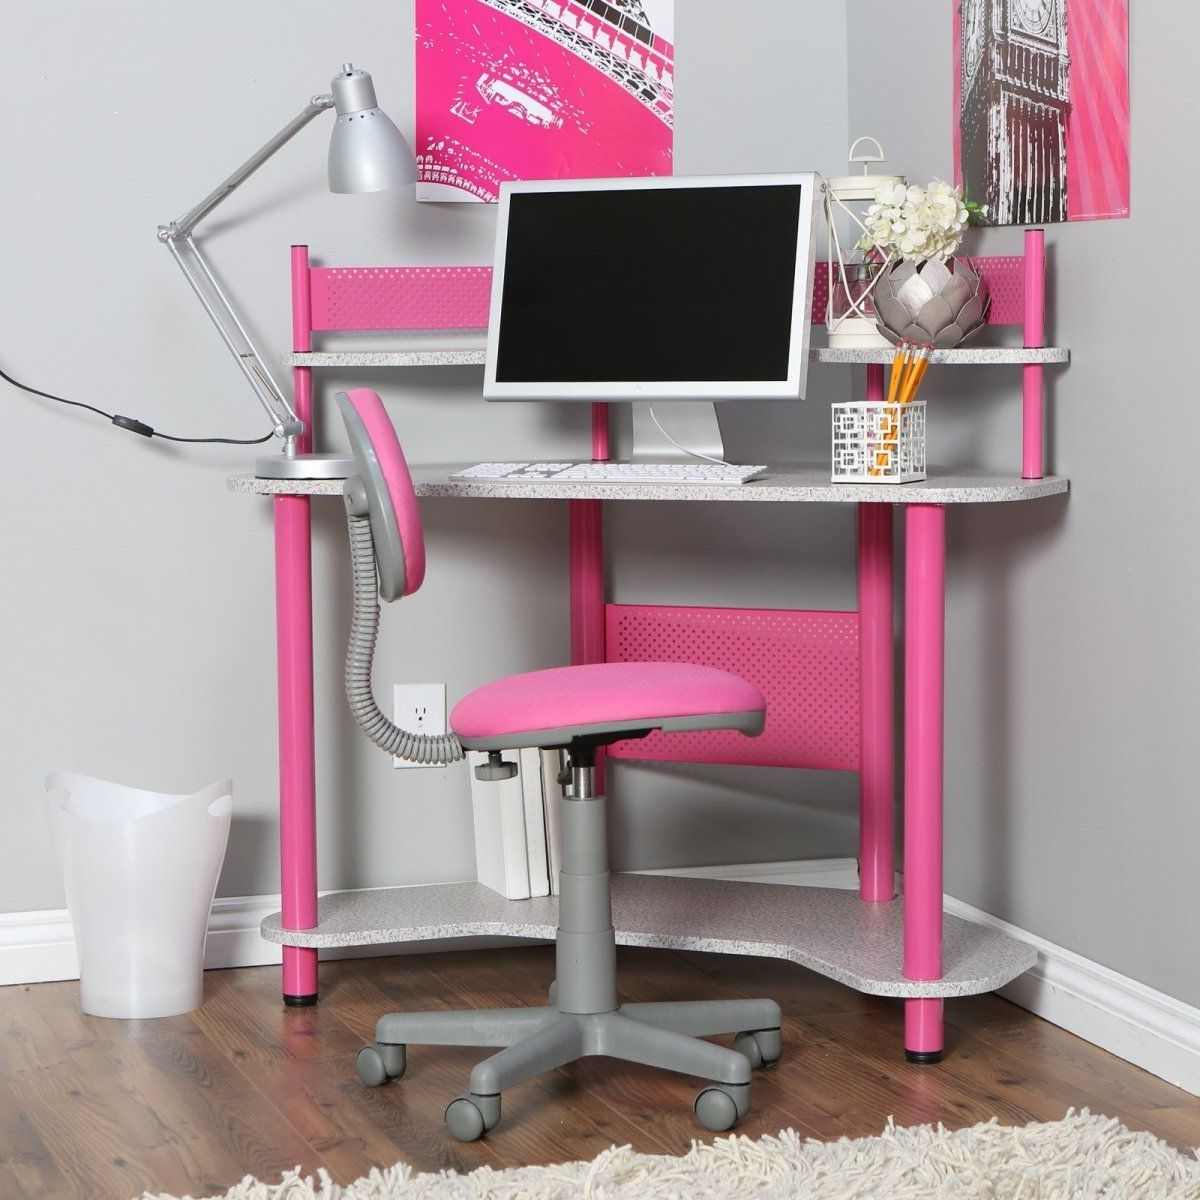 Furniture For Girl Bedroom Design (View 16 of 20)